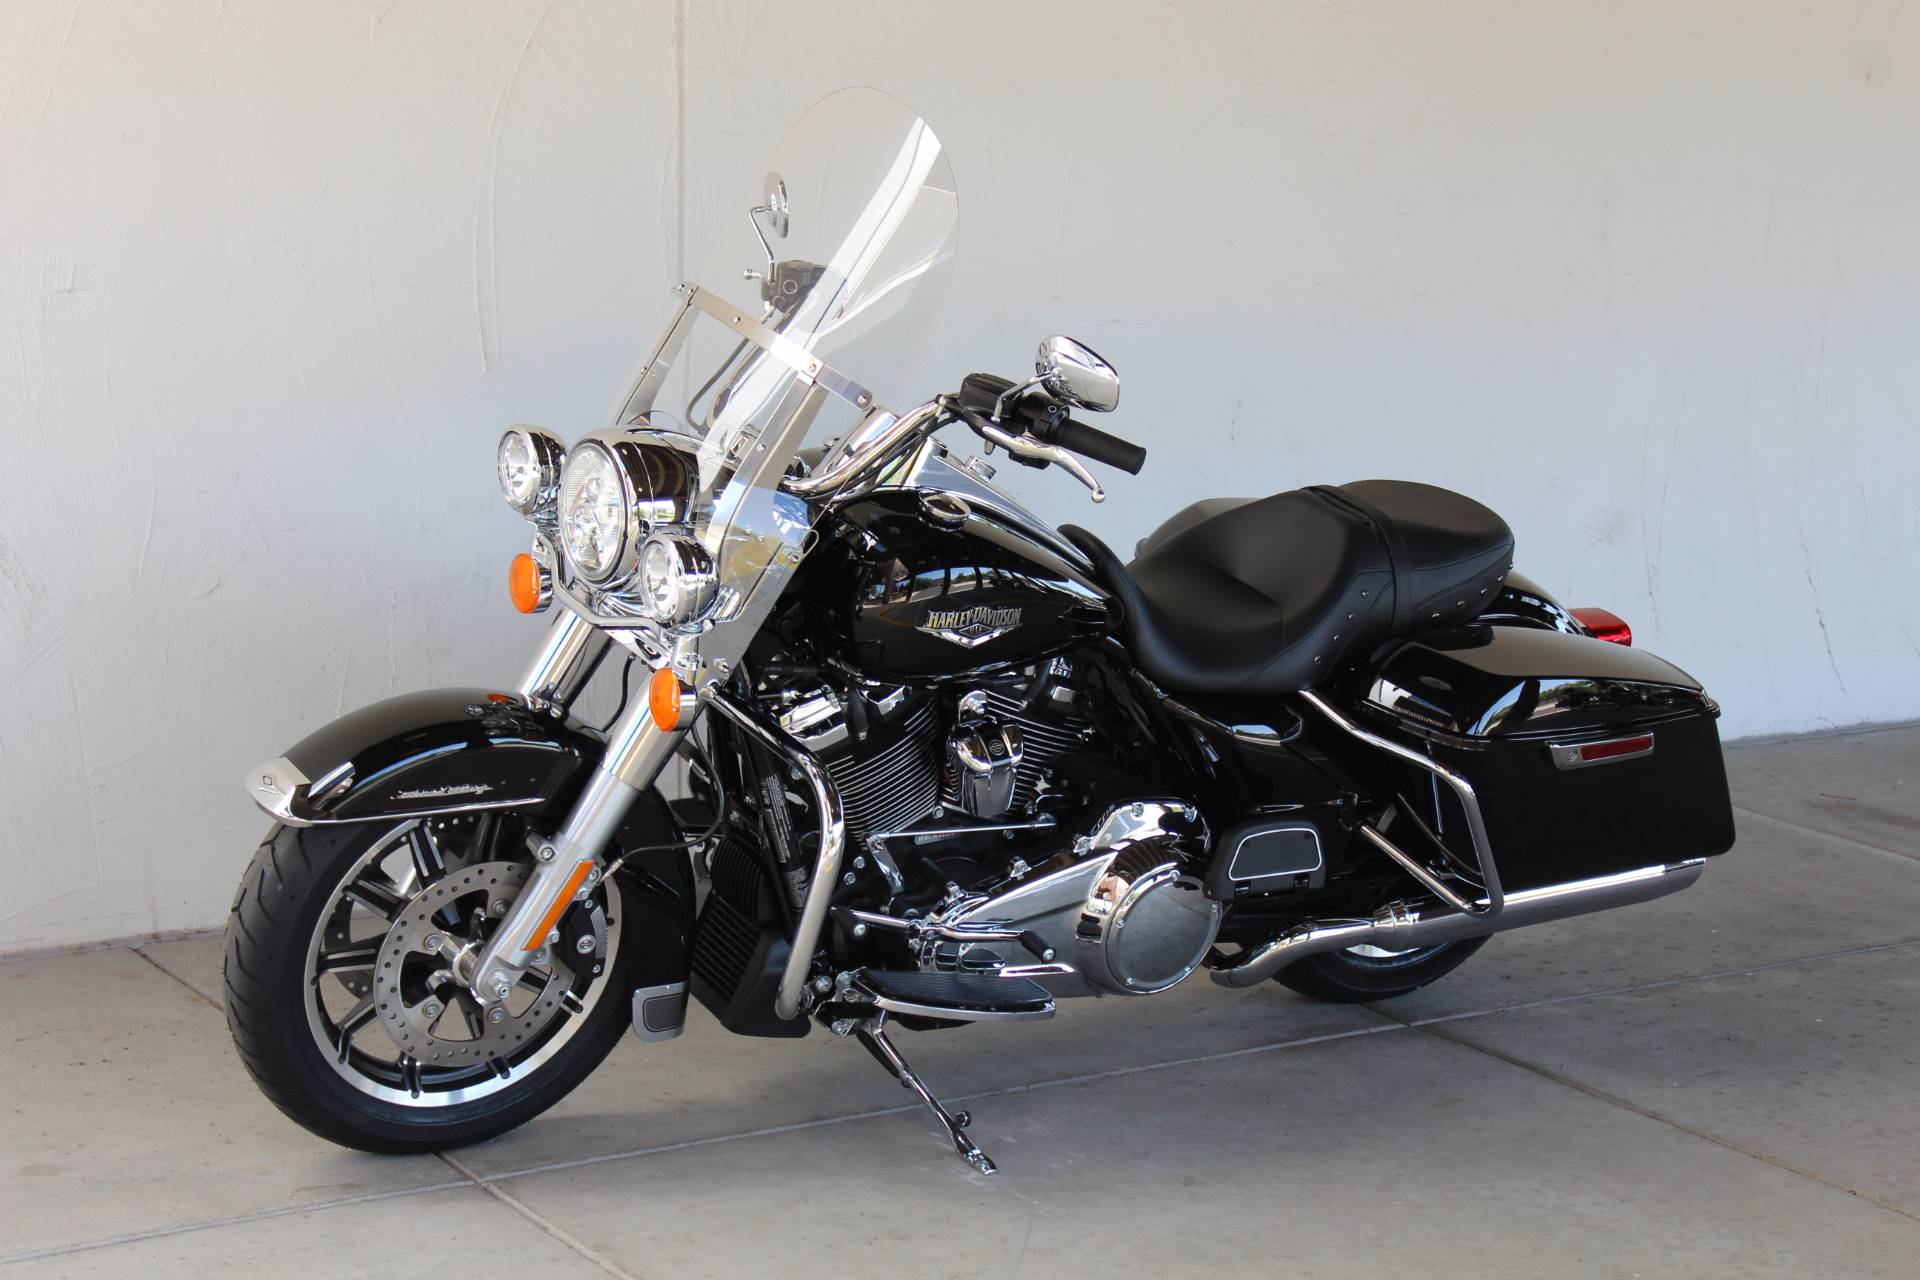 home design estimate with Motorcycles Harley Davidson Road King 2018 Apache Junction Az 339de164 Edb6 4beb 886c A7f40143e231 on Flyers moreover Motorcycles Harley Davidson Road King 2018 Apache Junction AZ 339de164 Edb6 4beb 886c A7f40143e231 furthermore Arizonabarndoors further Porridge Life Lessons What I Learned In A Year Of Eating Oats also Moffittcorp.